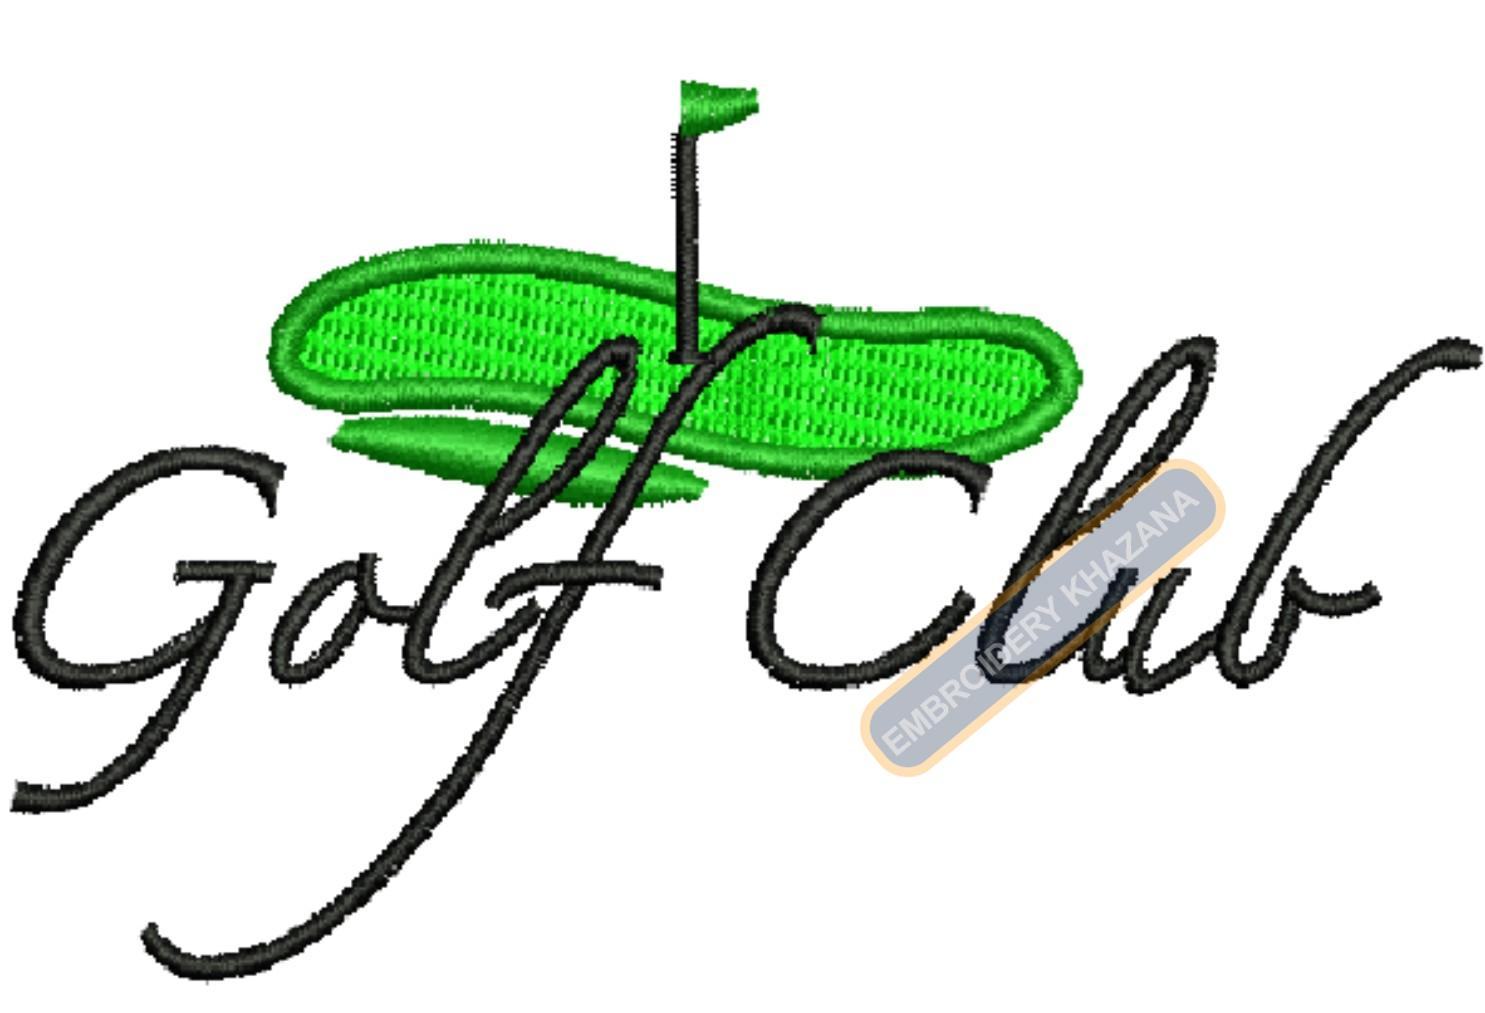 1432799122_golf club flag.jpg